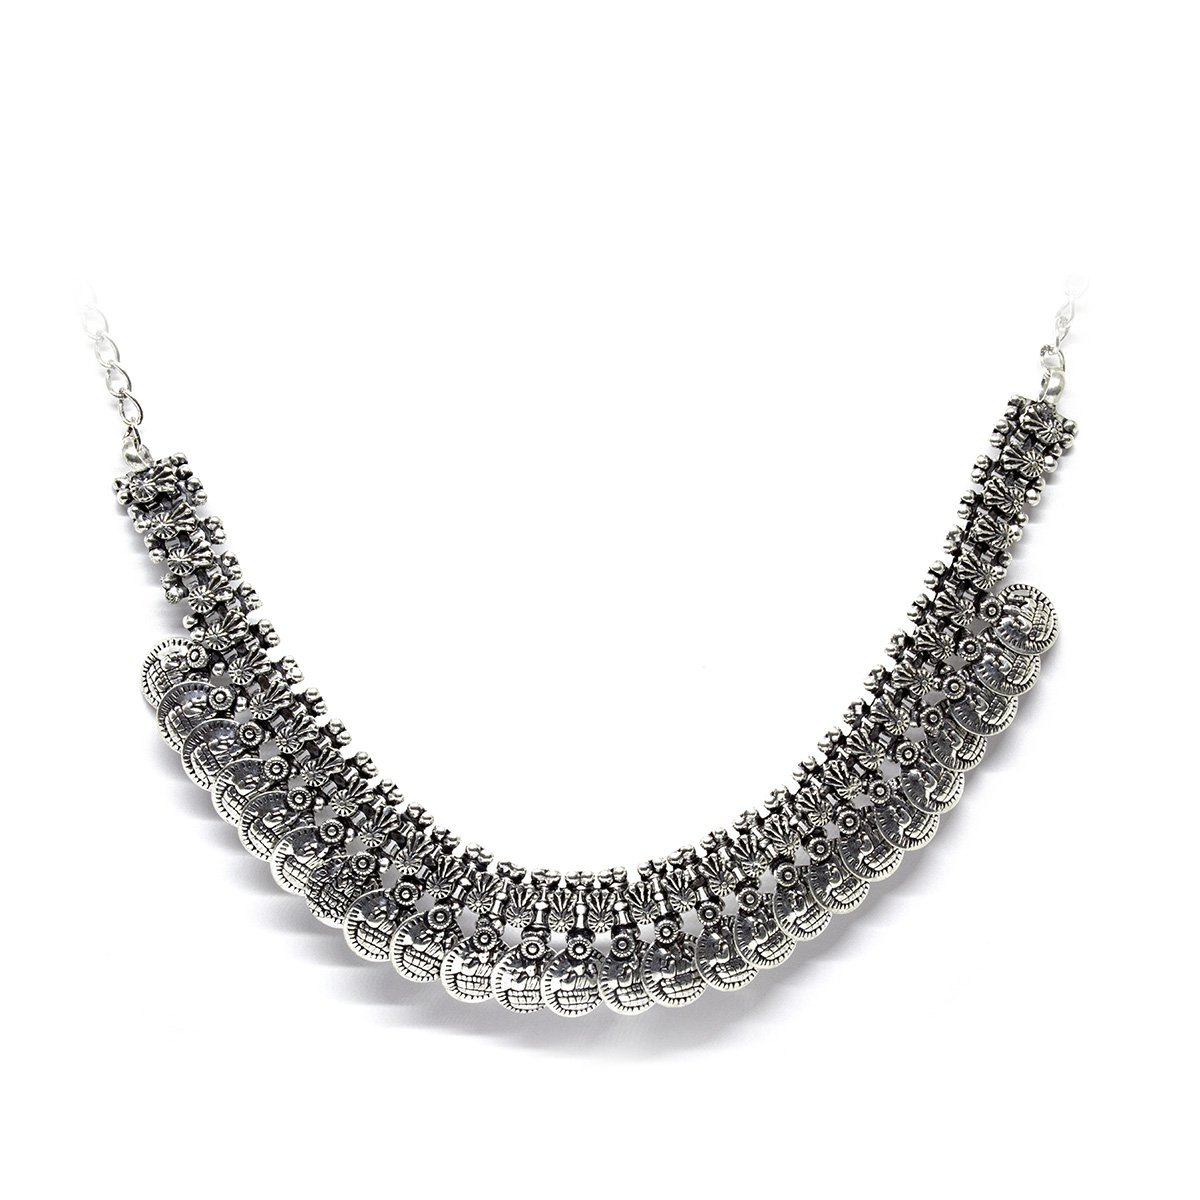 handmade silver coated necklace and earring set from India - een stip